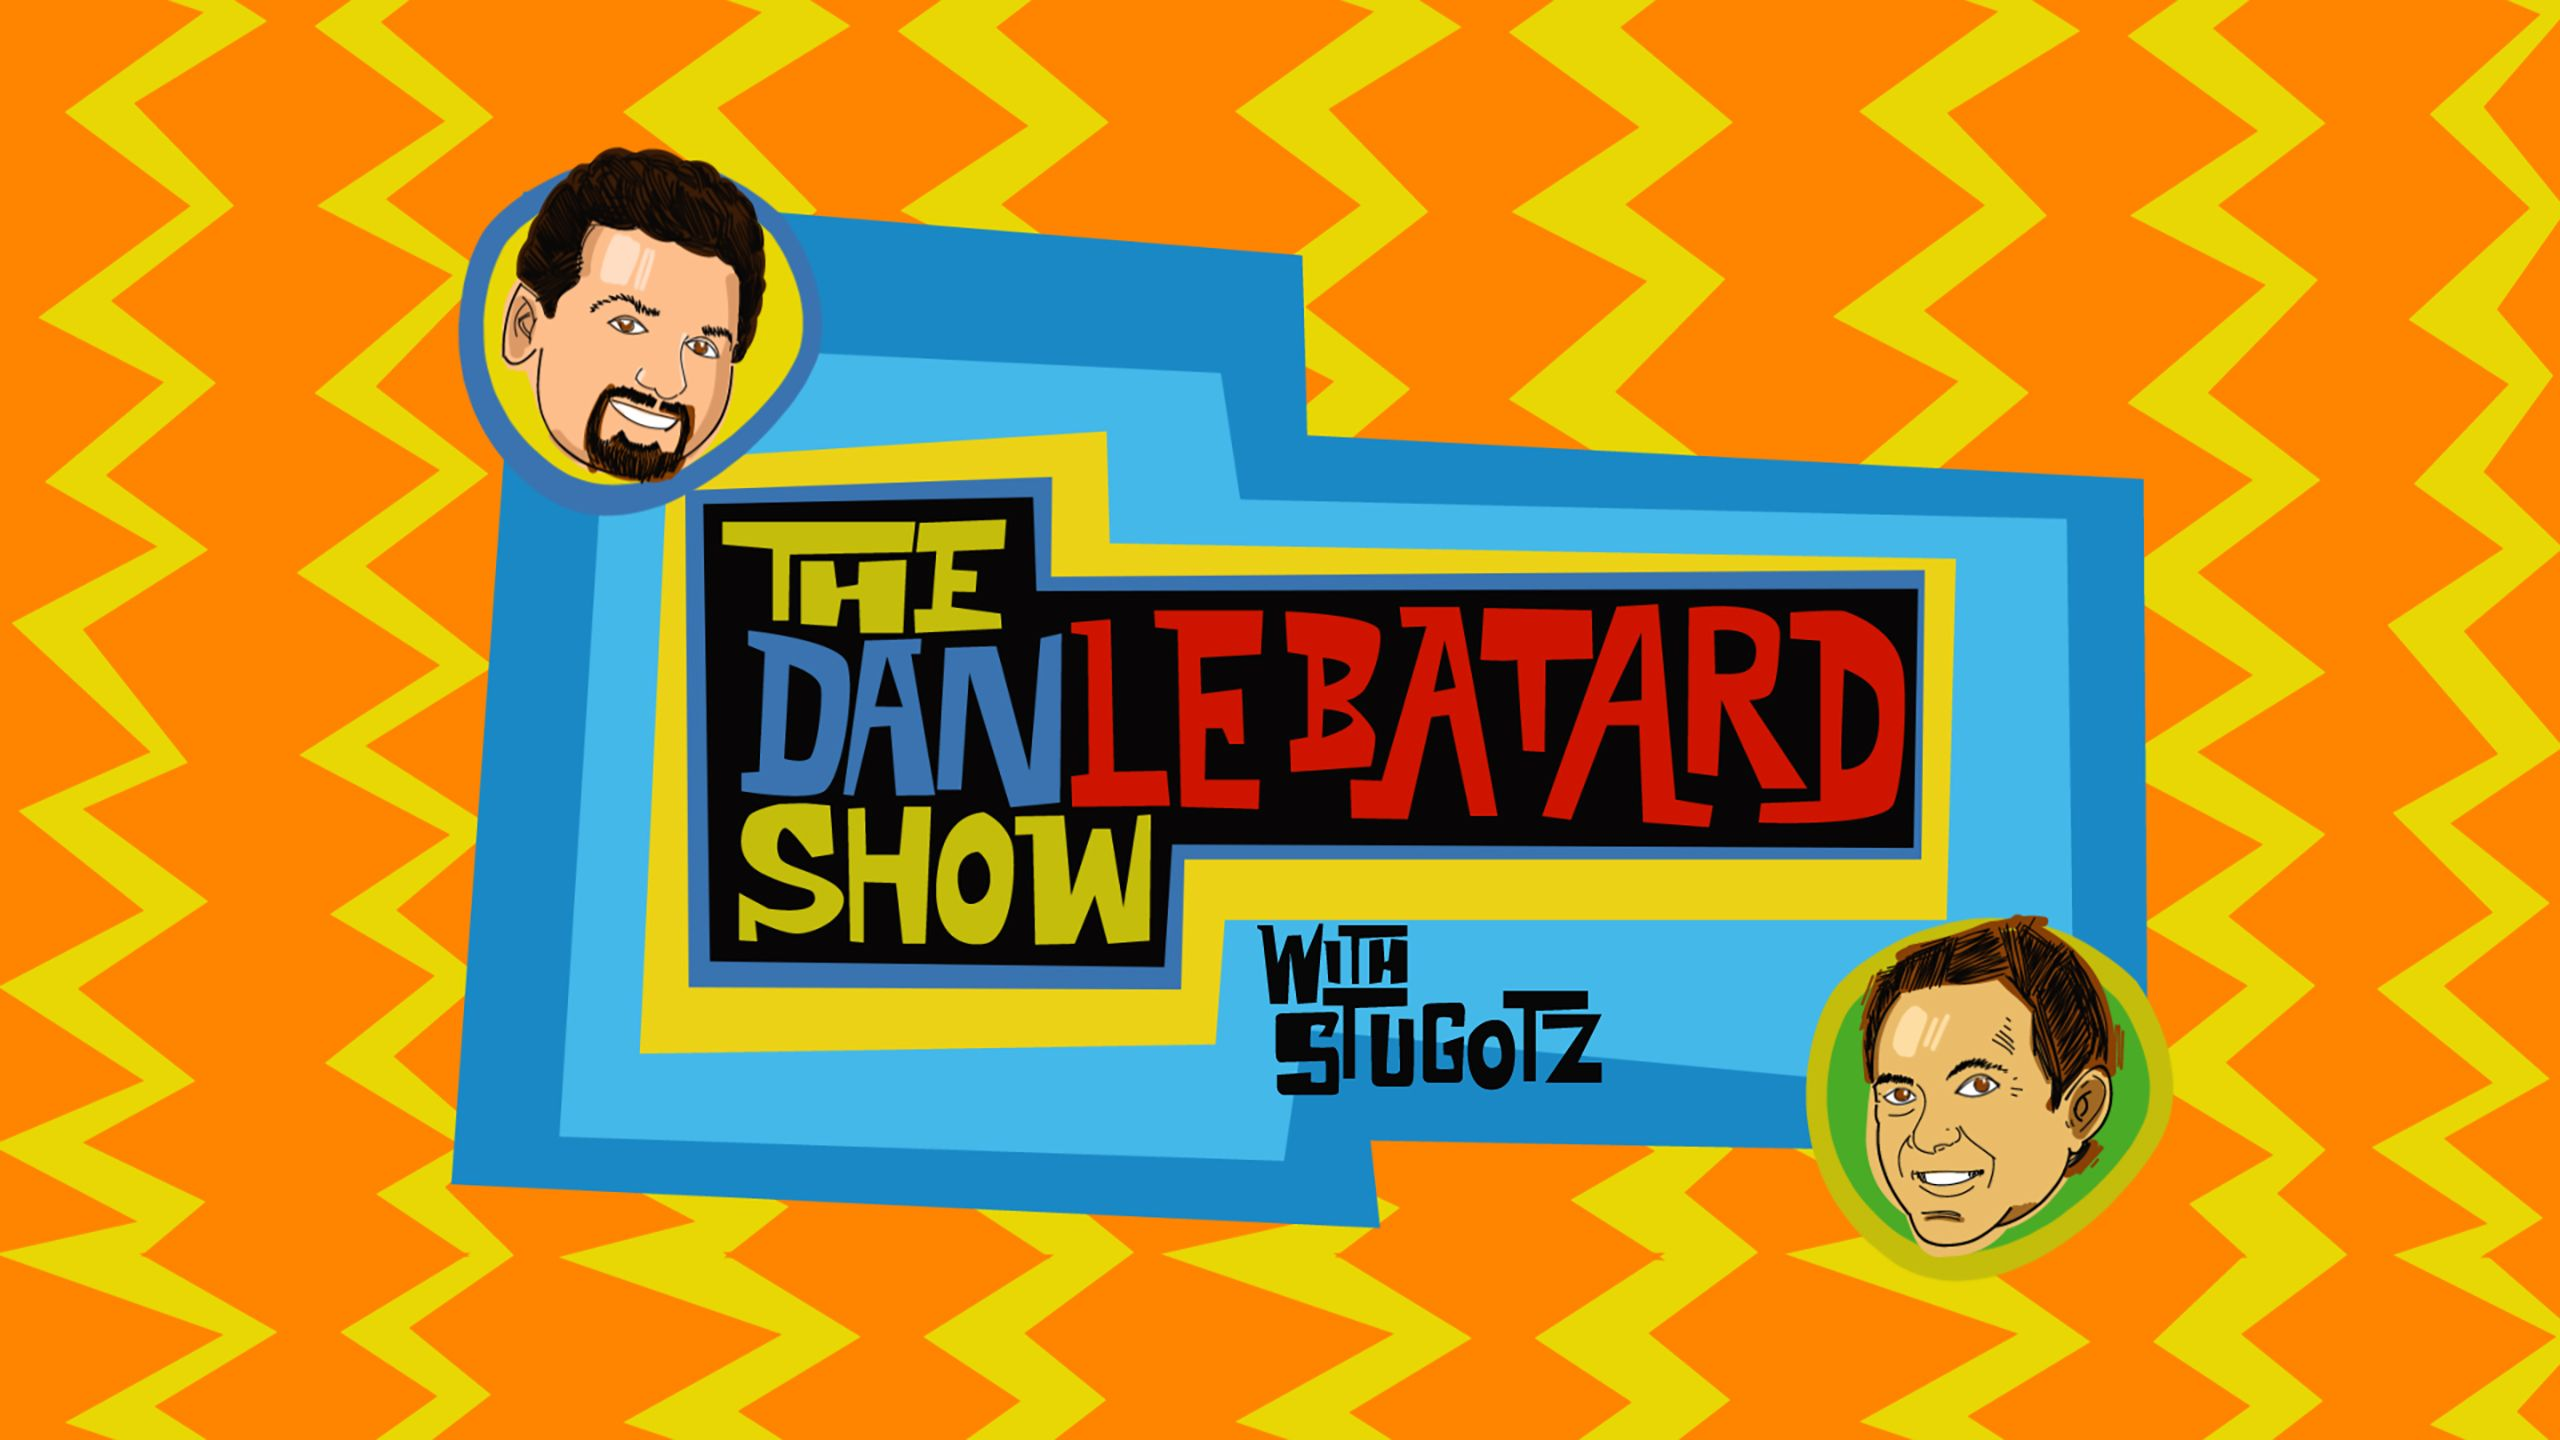 Tue, 1/23 - The Dan Le Batard Show with Stugotz Presented by Progressive